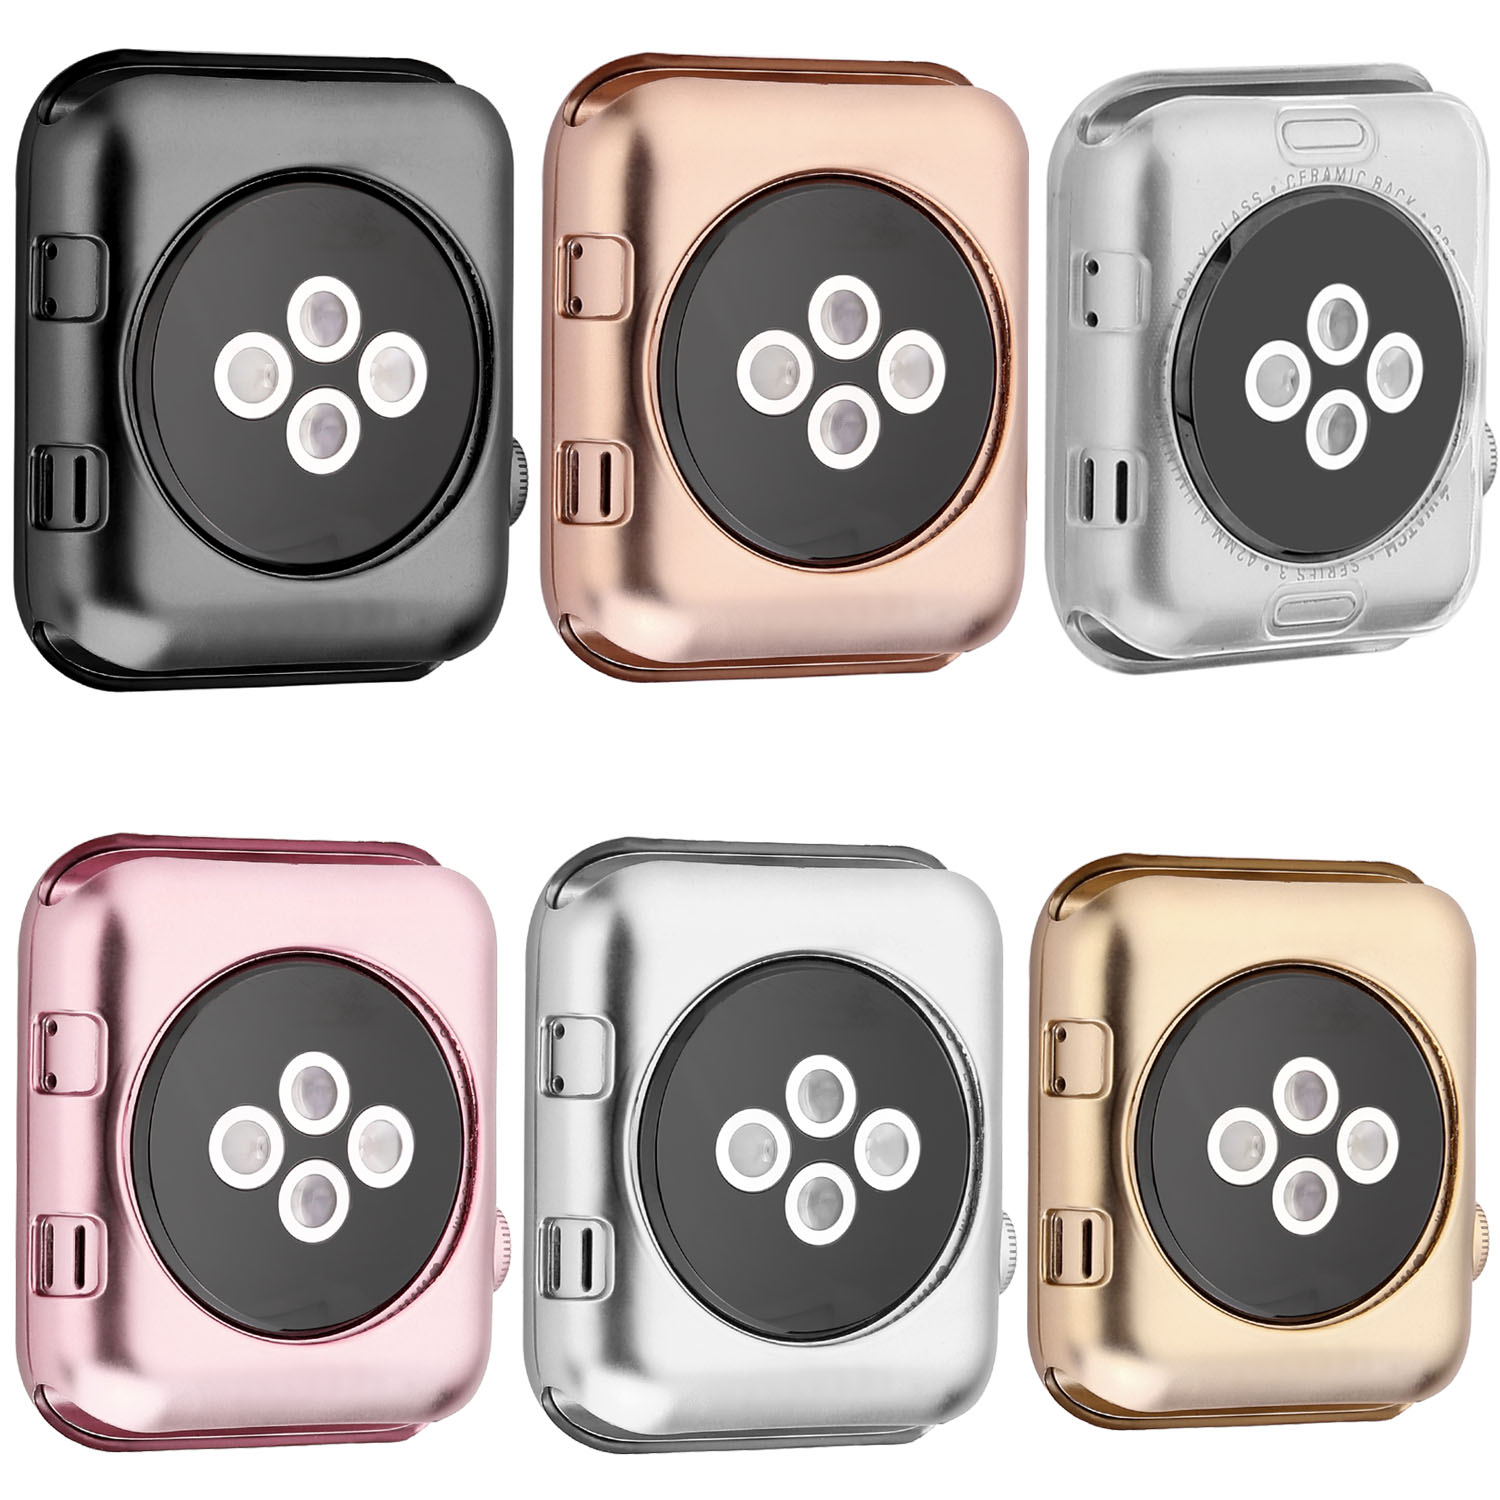 New 6 Colors Gold Plating Soft Silicone Case for Apple Watch Series 1 2 3 Cover Full Body Protection Watch Cover Band 42mm 38mm new silicone case watch frame for apple watch series 3 2 1 38mm 42mm watch band full protection case cover for apple iwatch 3 2